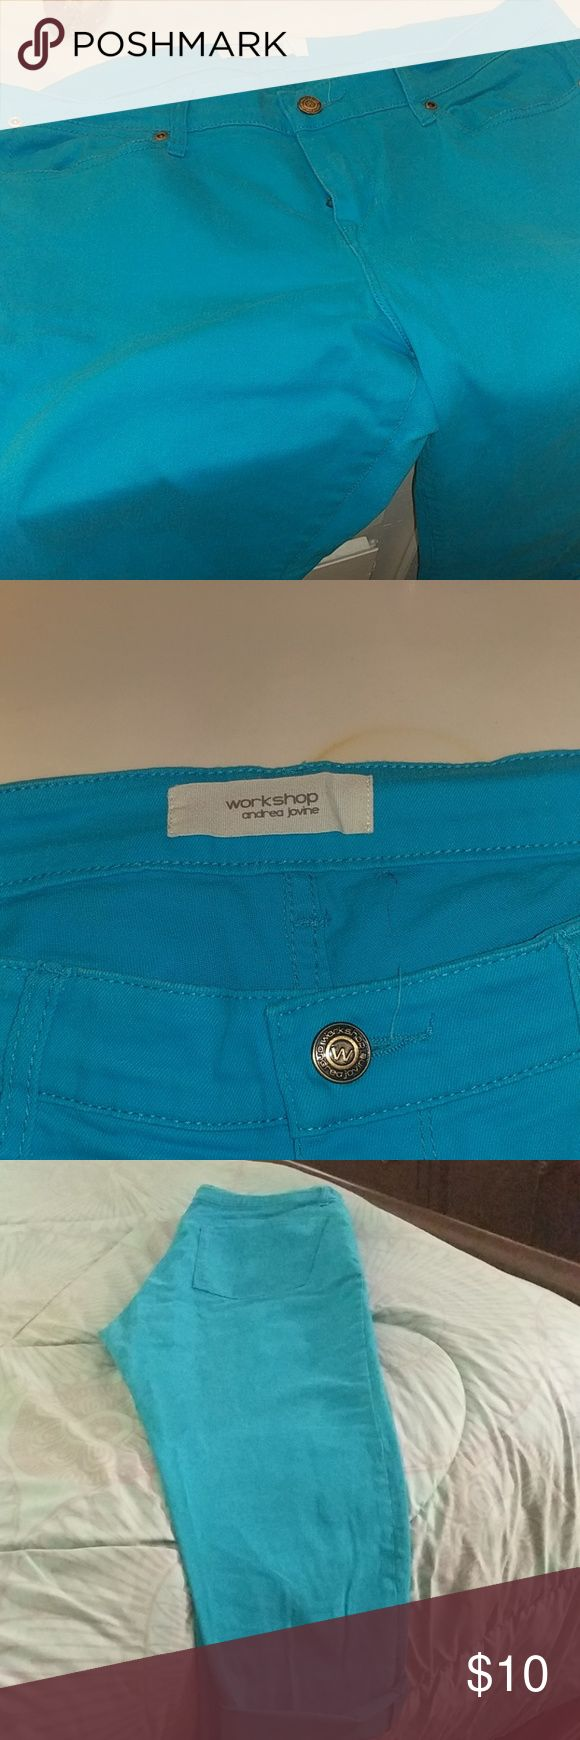 Bright blue jeans Andrea jovine jeans almost new Jeans